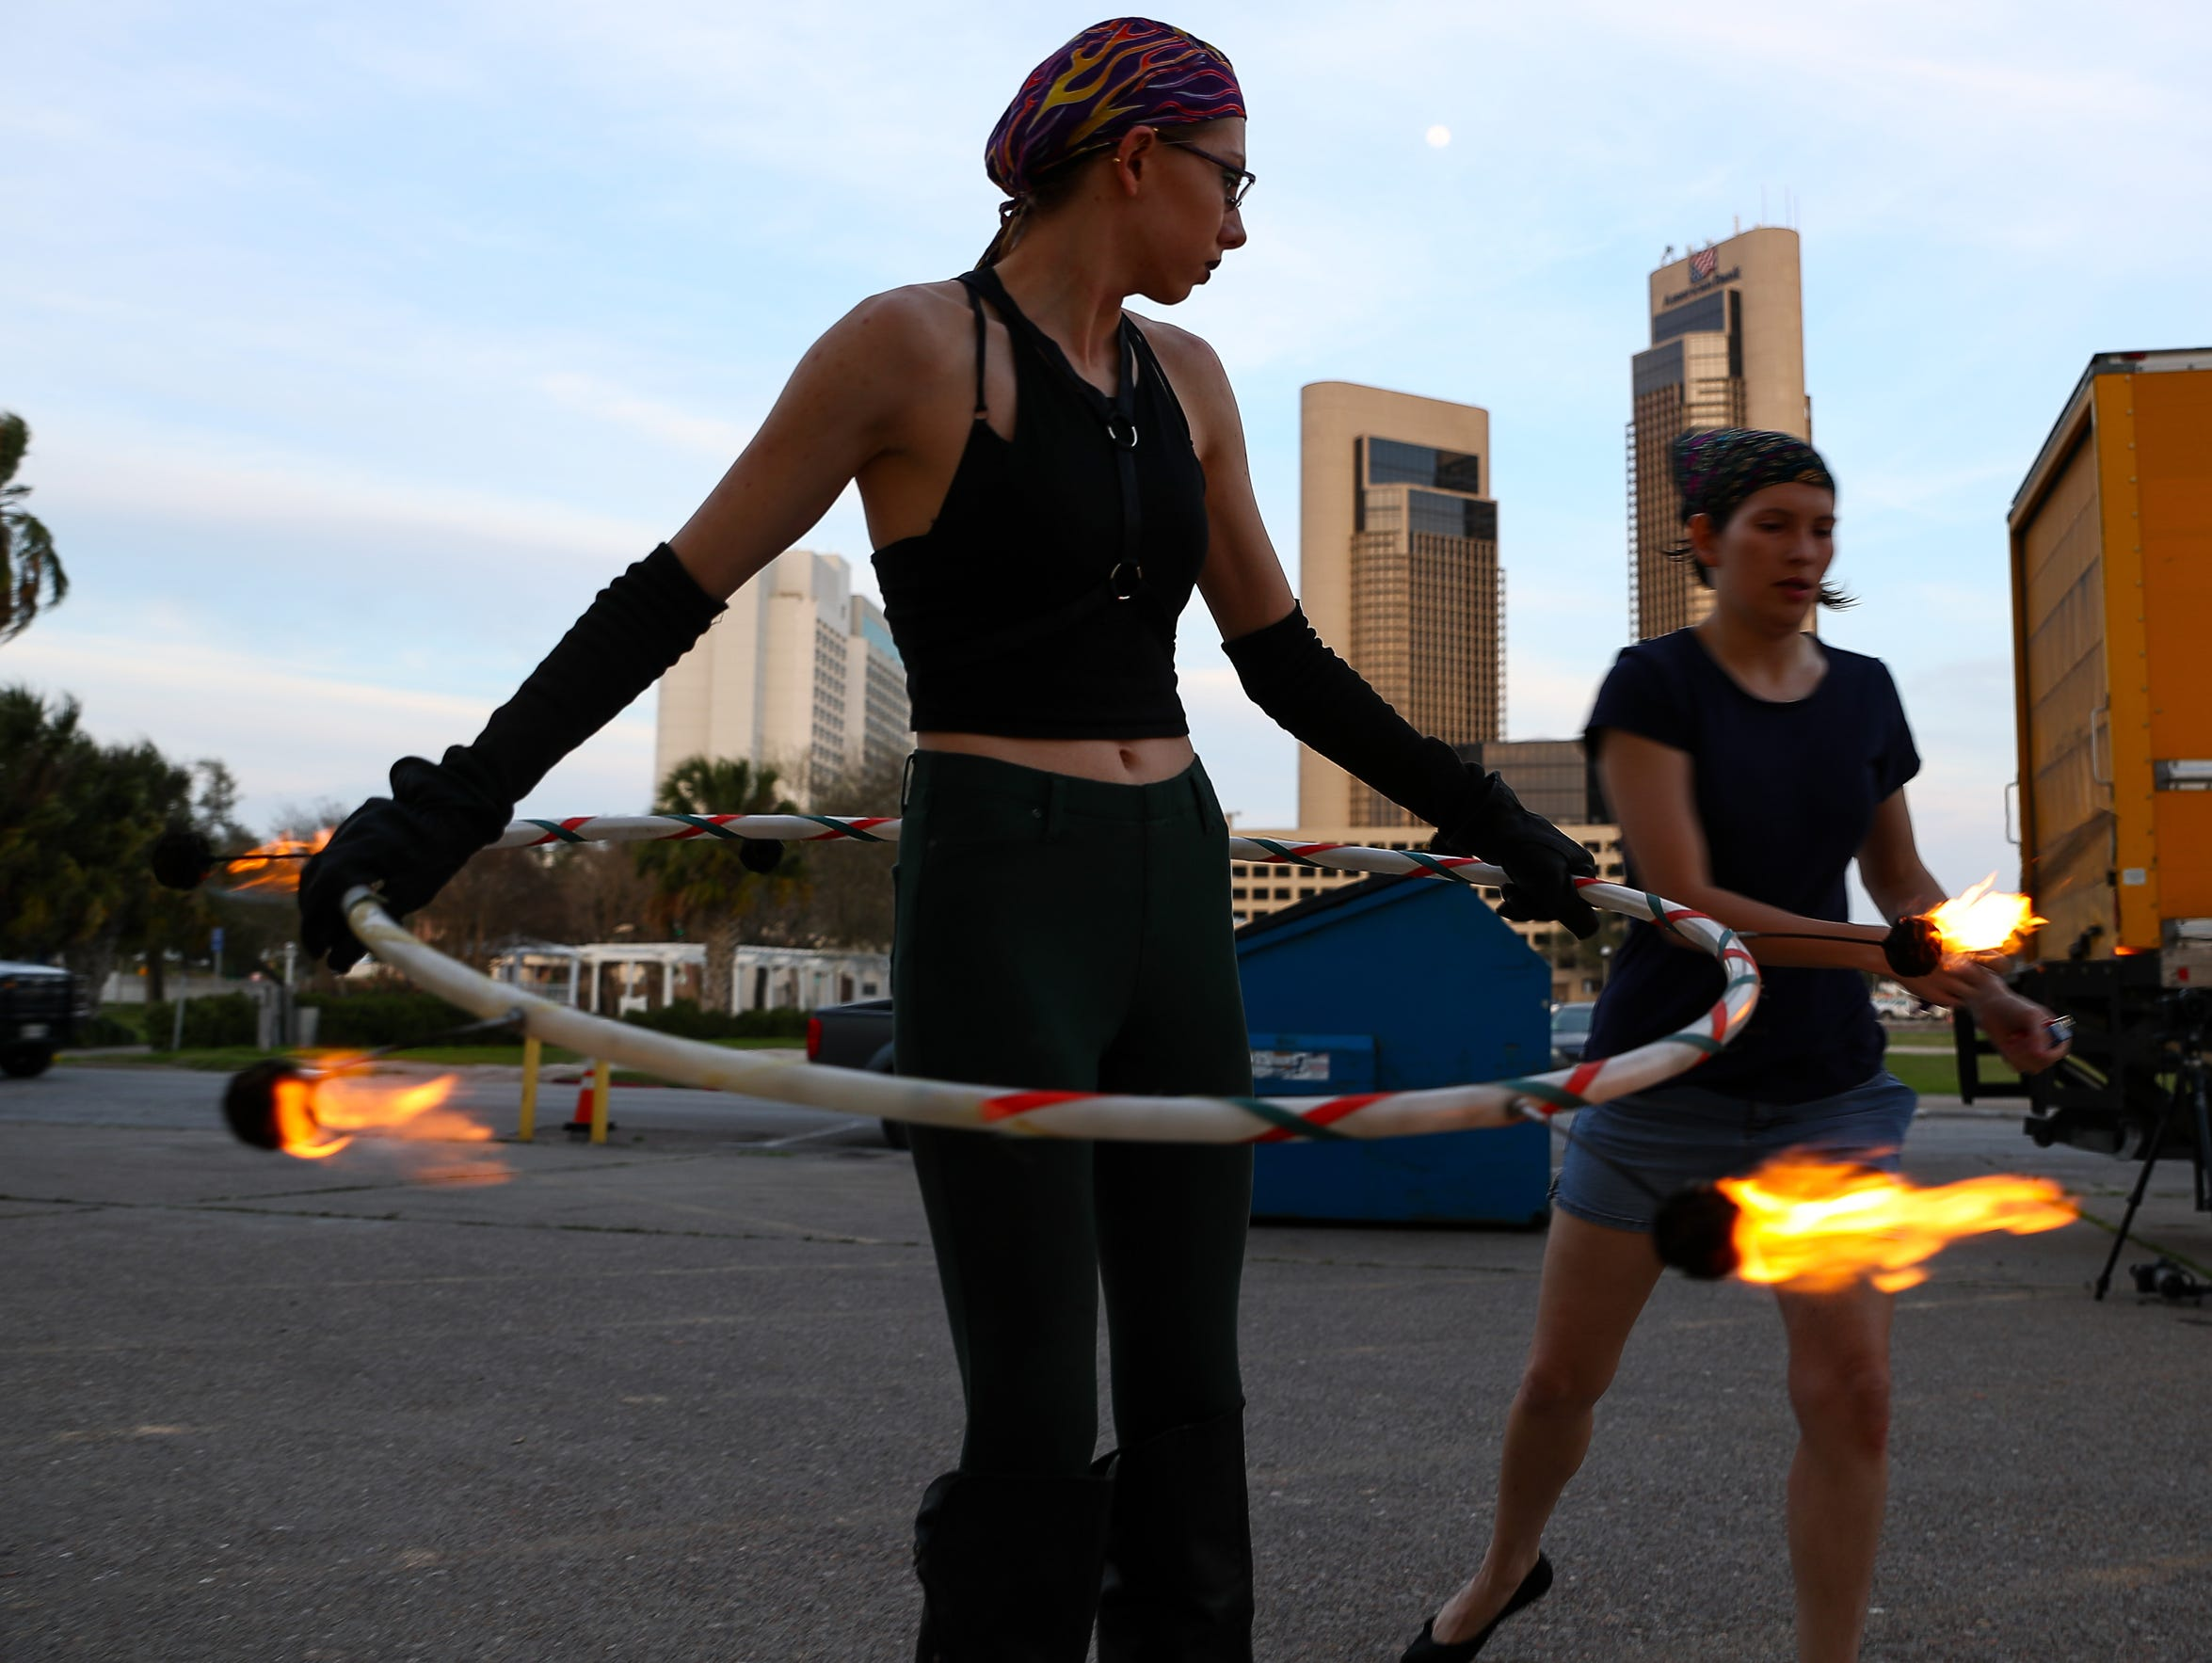 Viktoria Birr demonstrates fire spinning using a hula